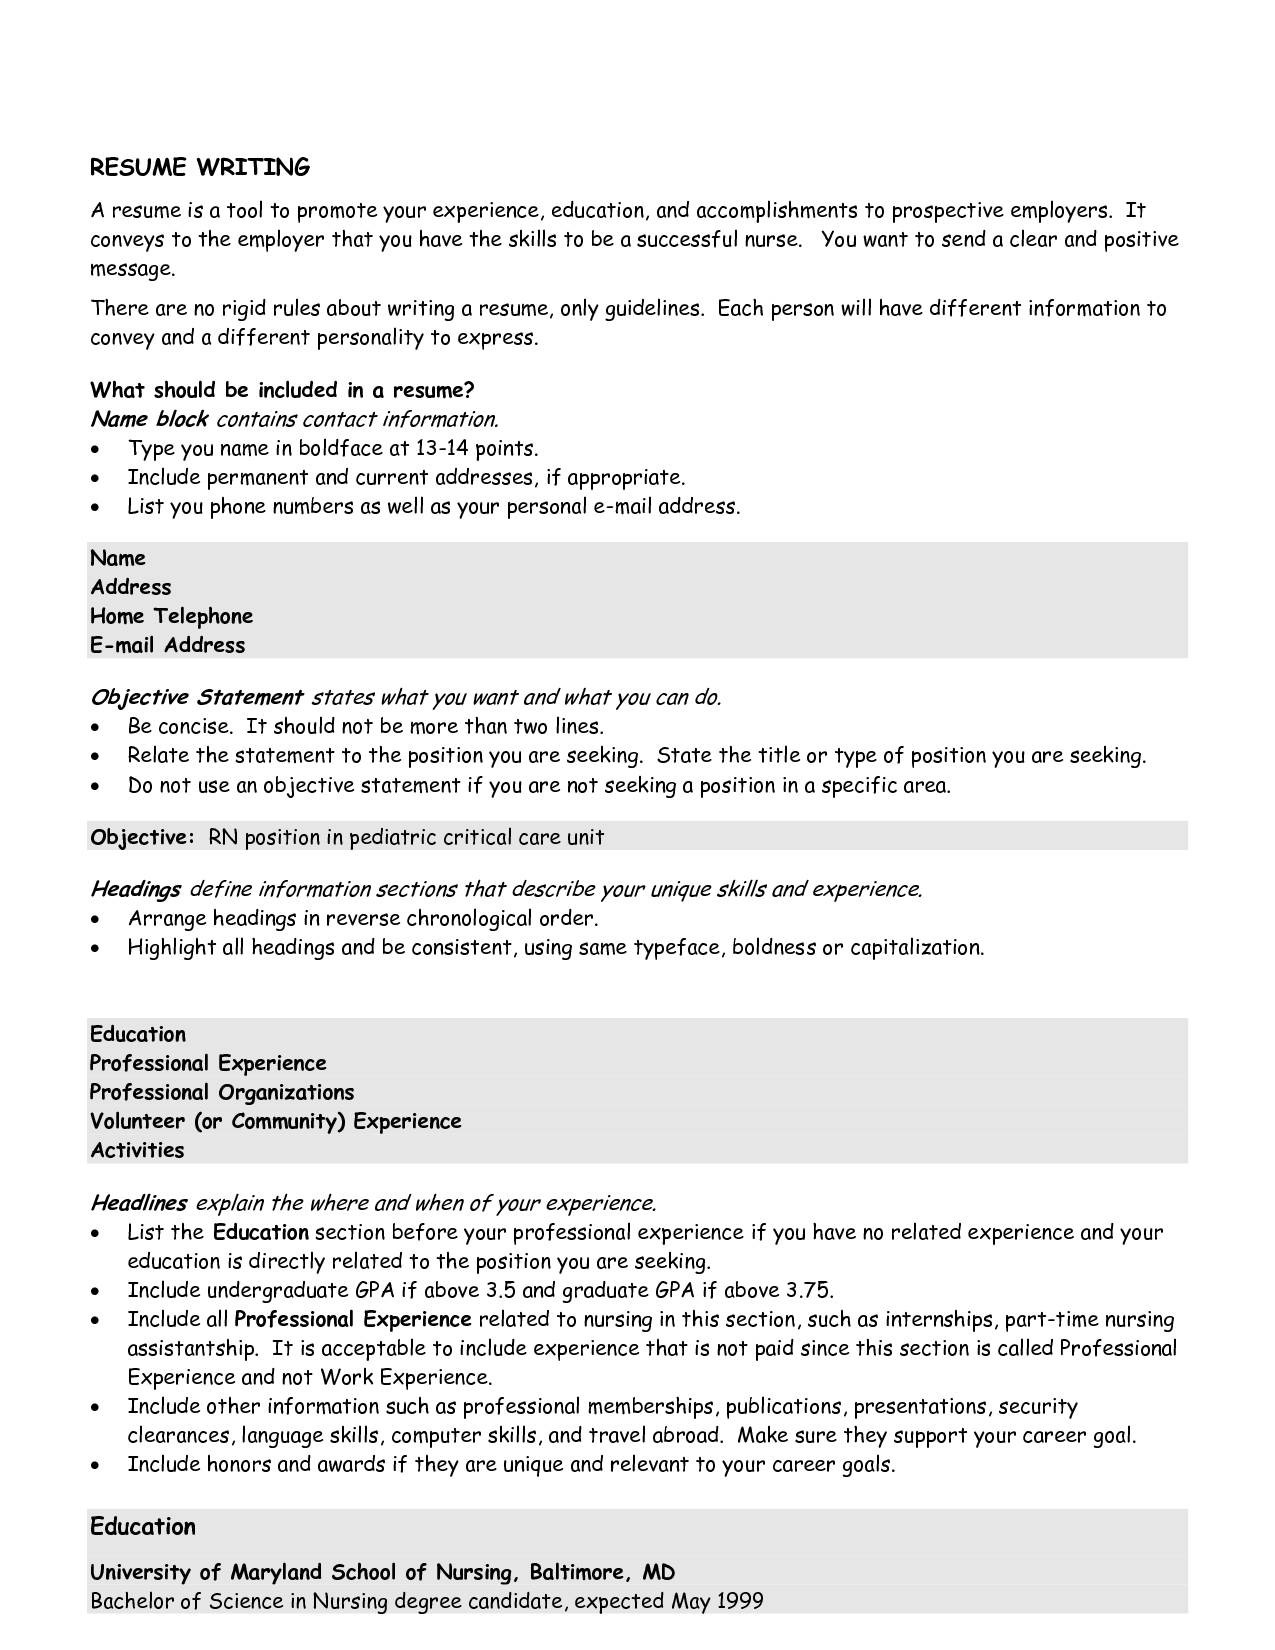 catchy resume good resume objective lines objectives include profile. Resume Example. Resume CV Cover Letter